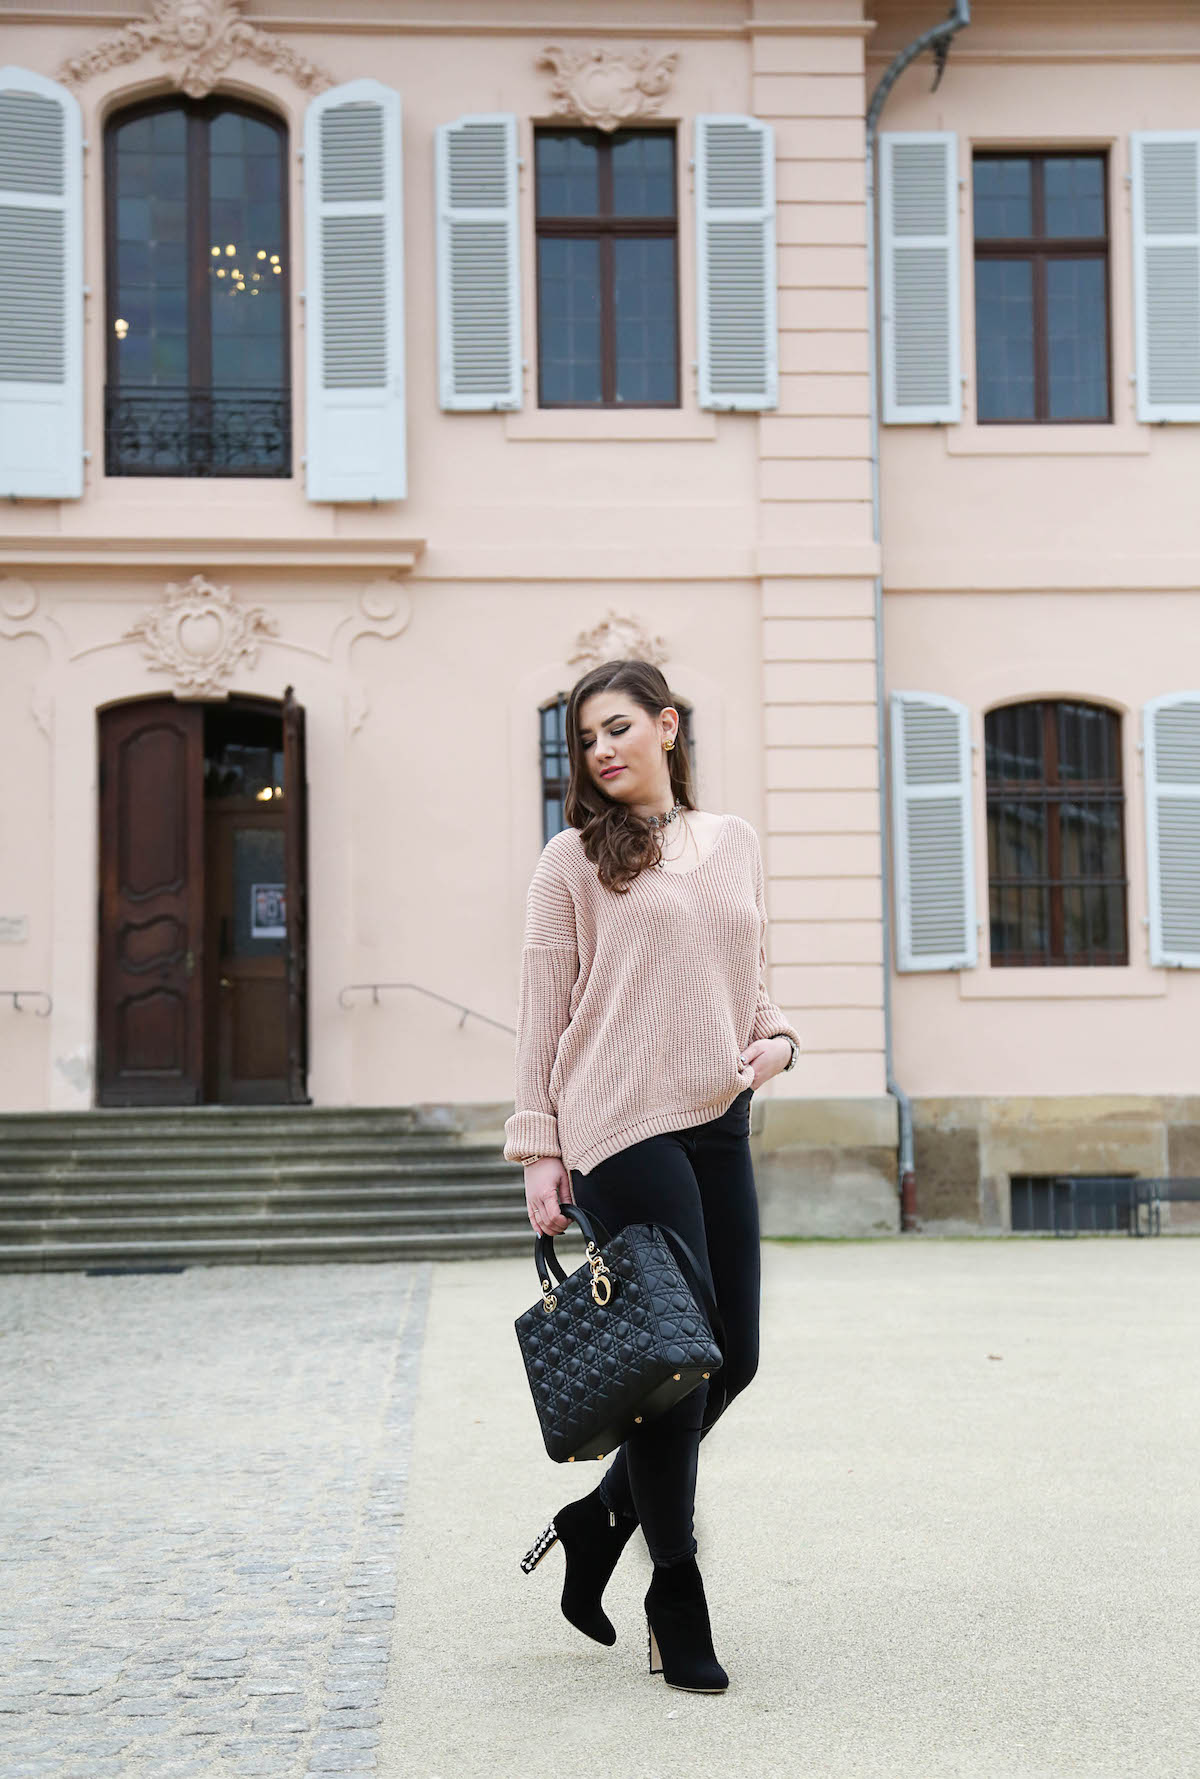 sara-bow-outfit-mit-oversize-strickpullover-rosa-kombinieren